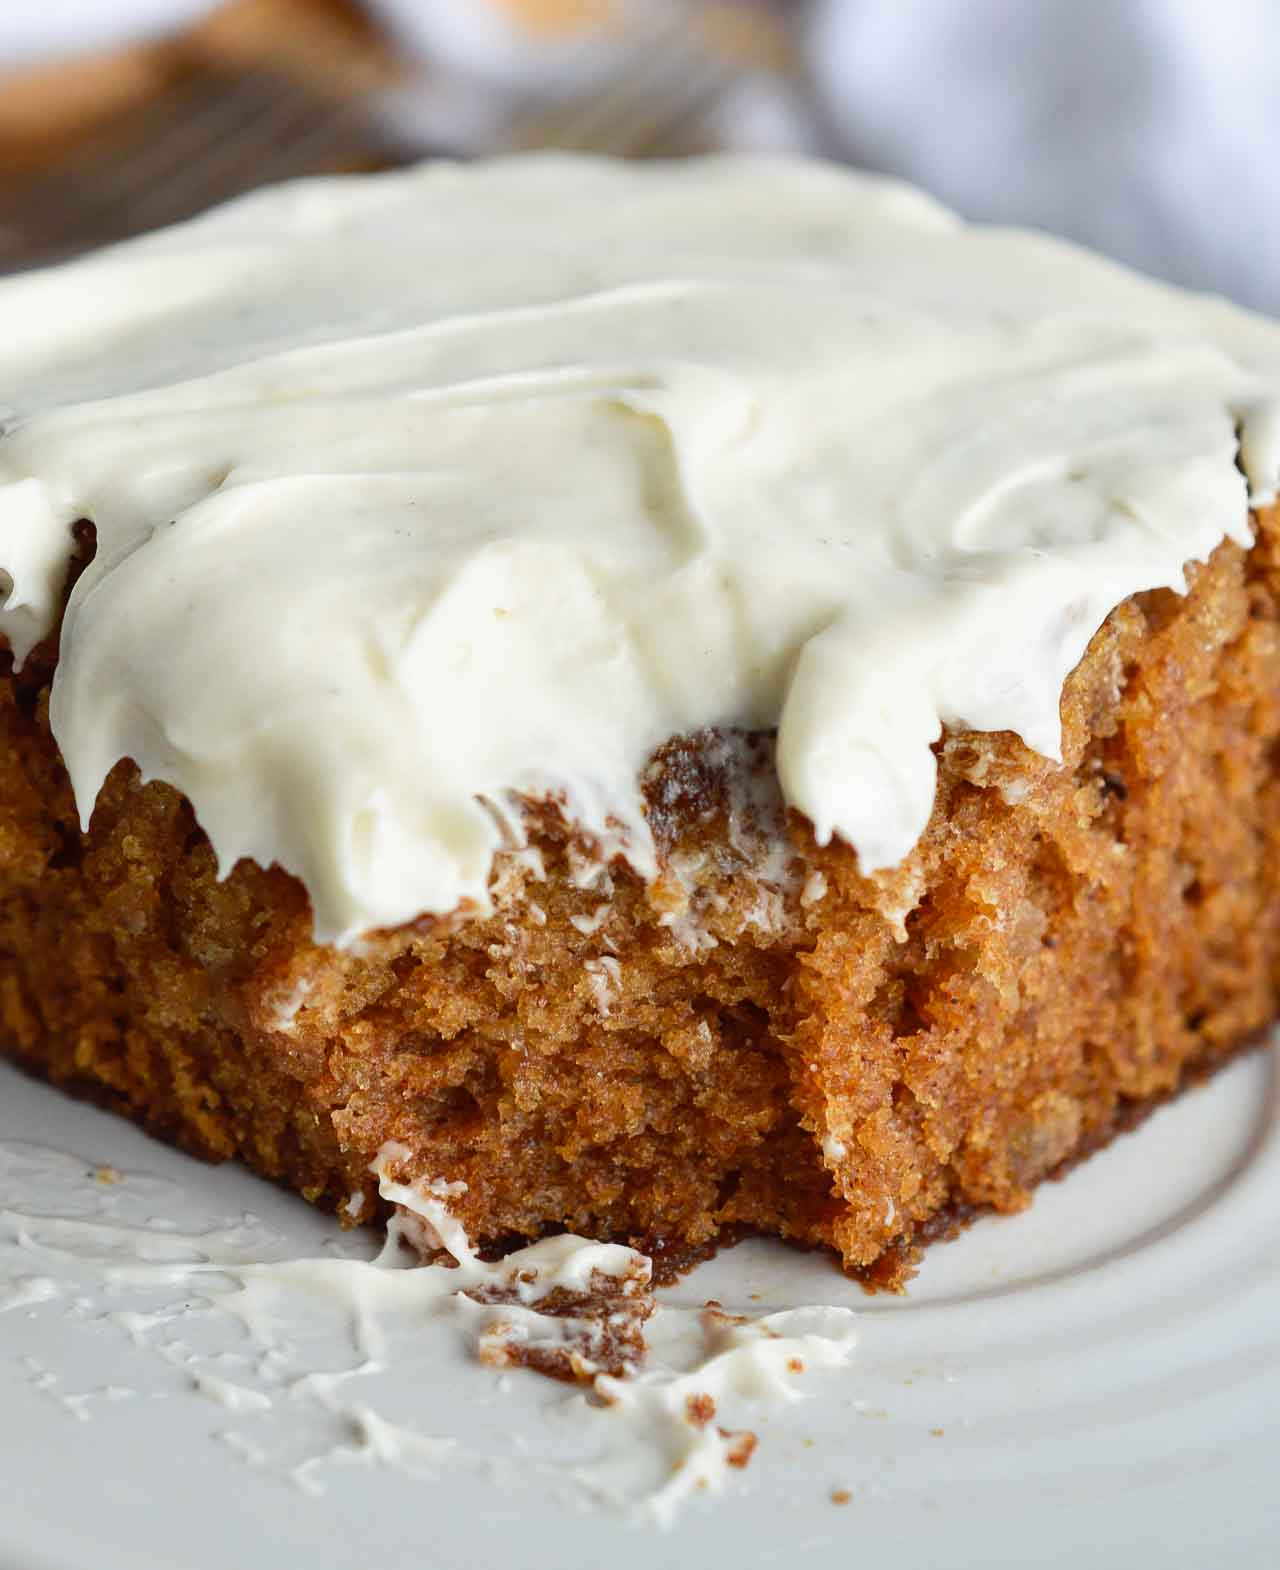 Simple carrot apple cake recipe